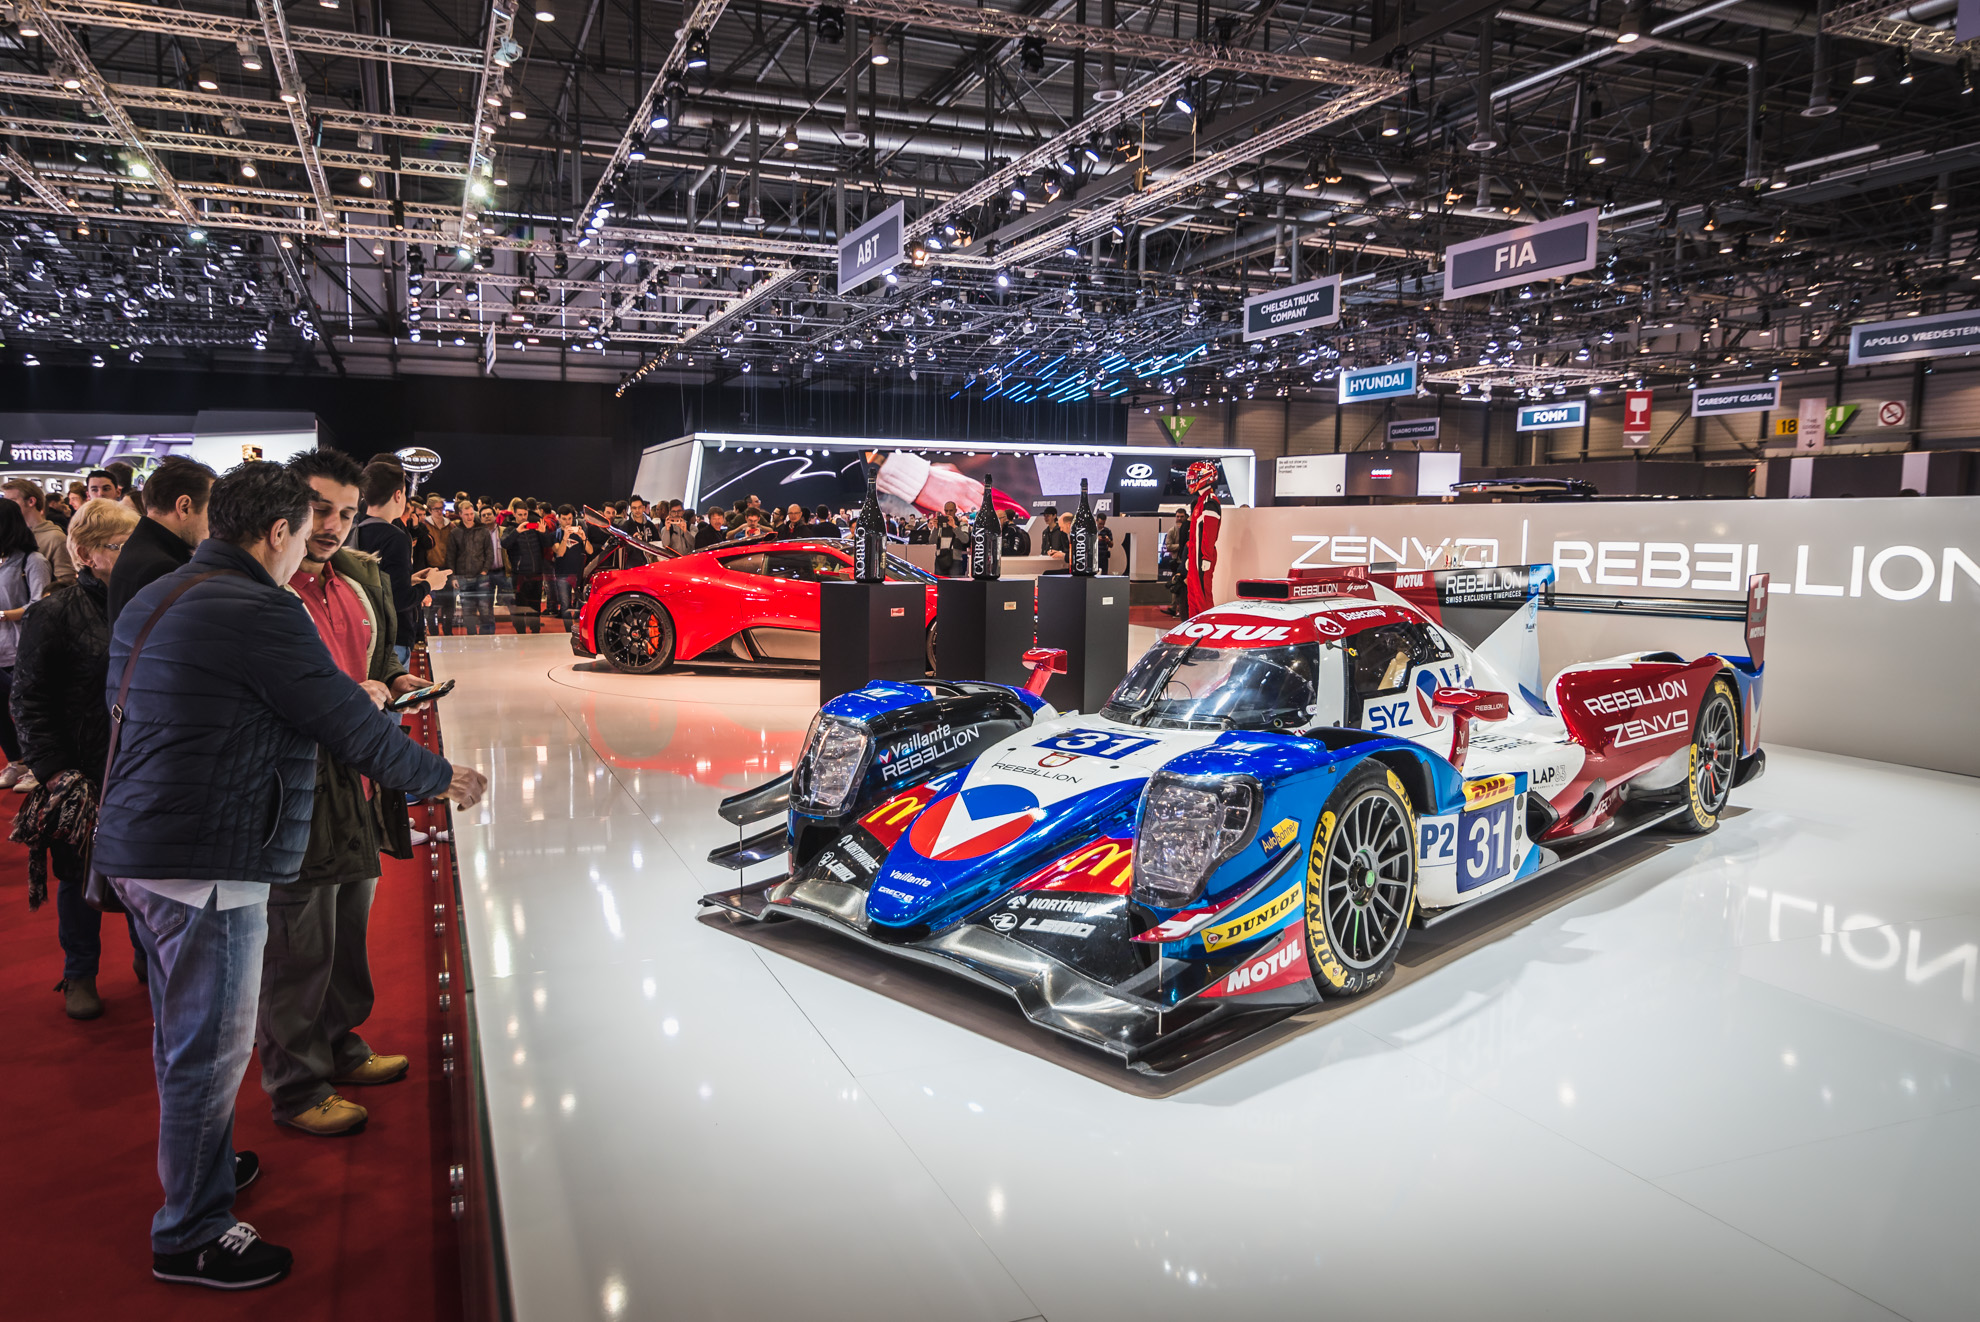 geneva-international-motor-show-igors-sinitsins-11